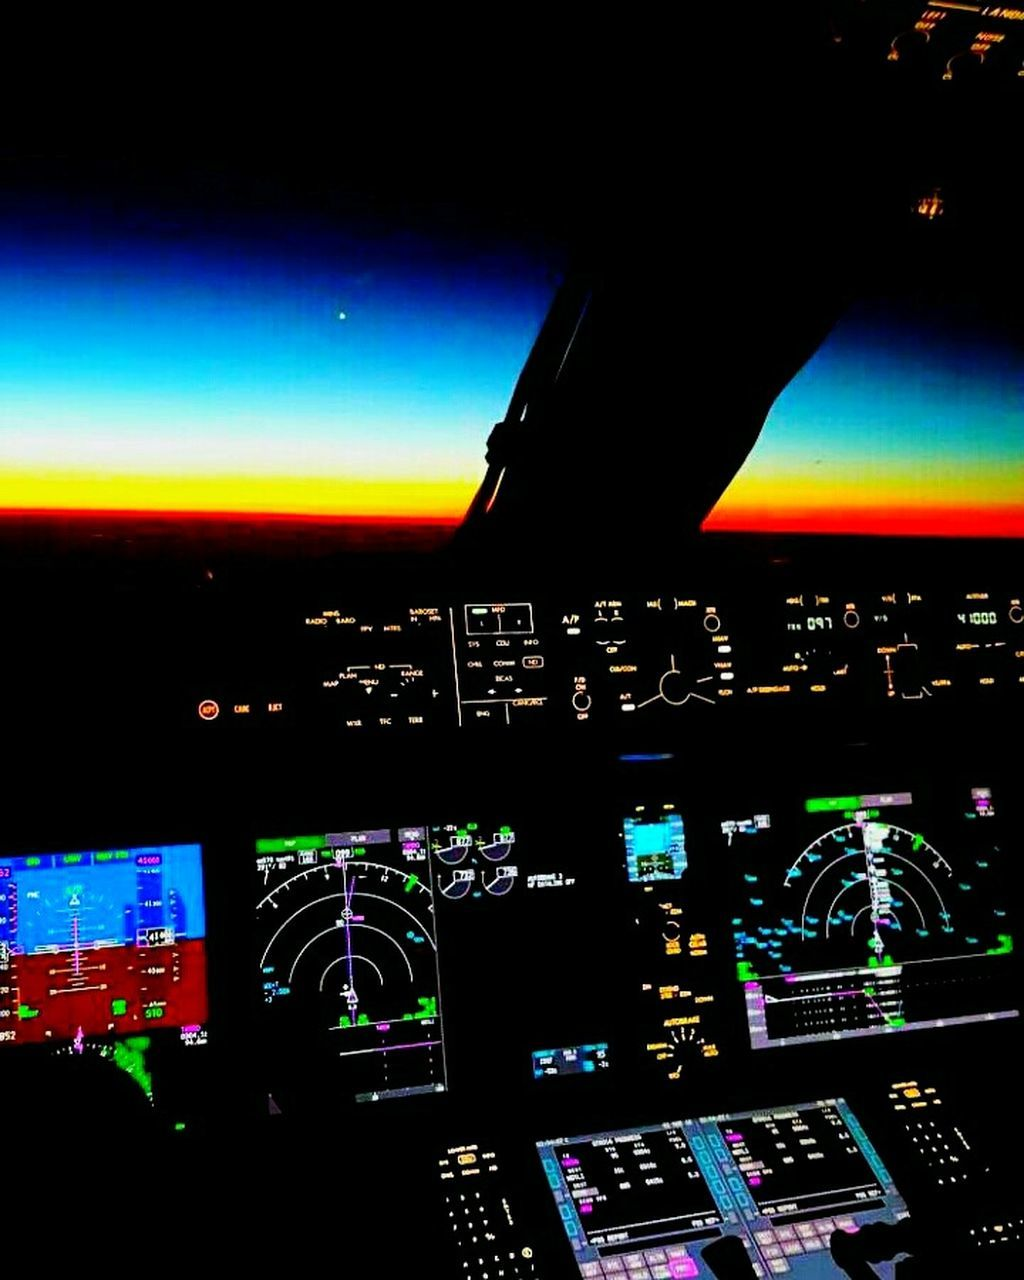 airplane, control panel, air vehicle, cockpit, transportation, aerospace industry, dashboard, mode of transport, technology, gauge, commercial airplane, multi colored, illuminated, indoors, complexity, airport runway, night, no people, close-up, sky